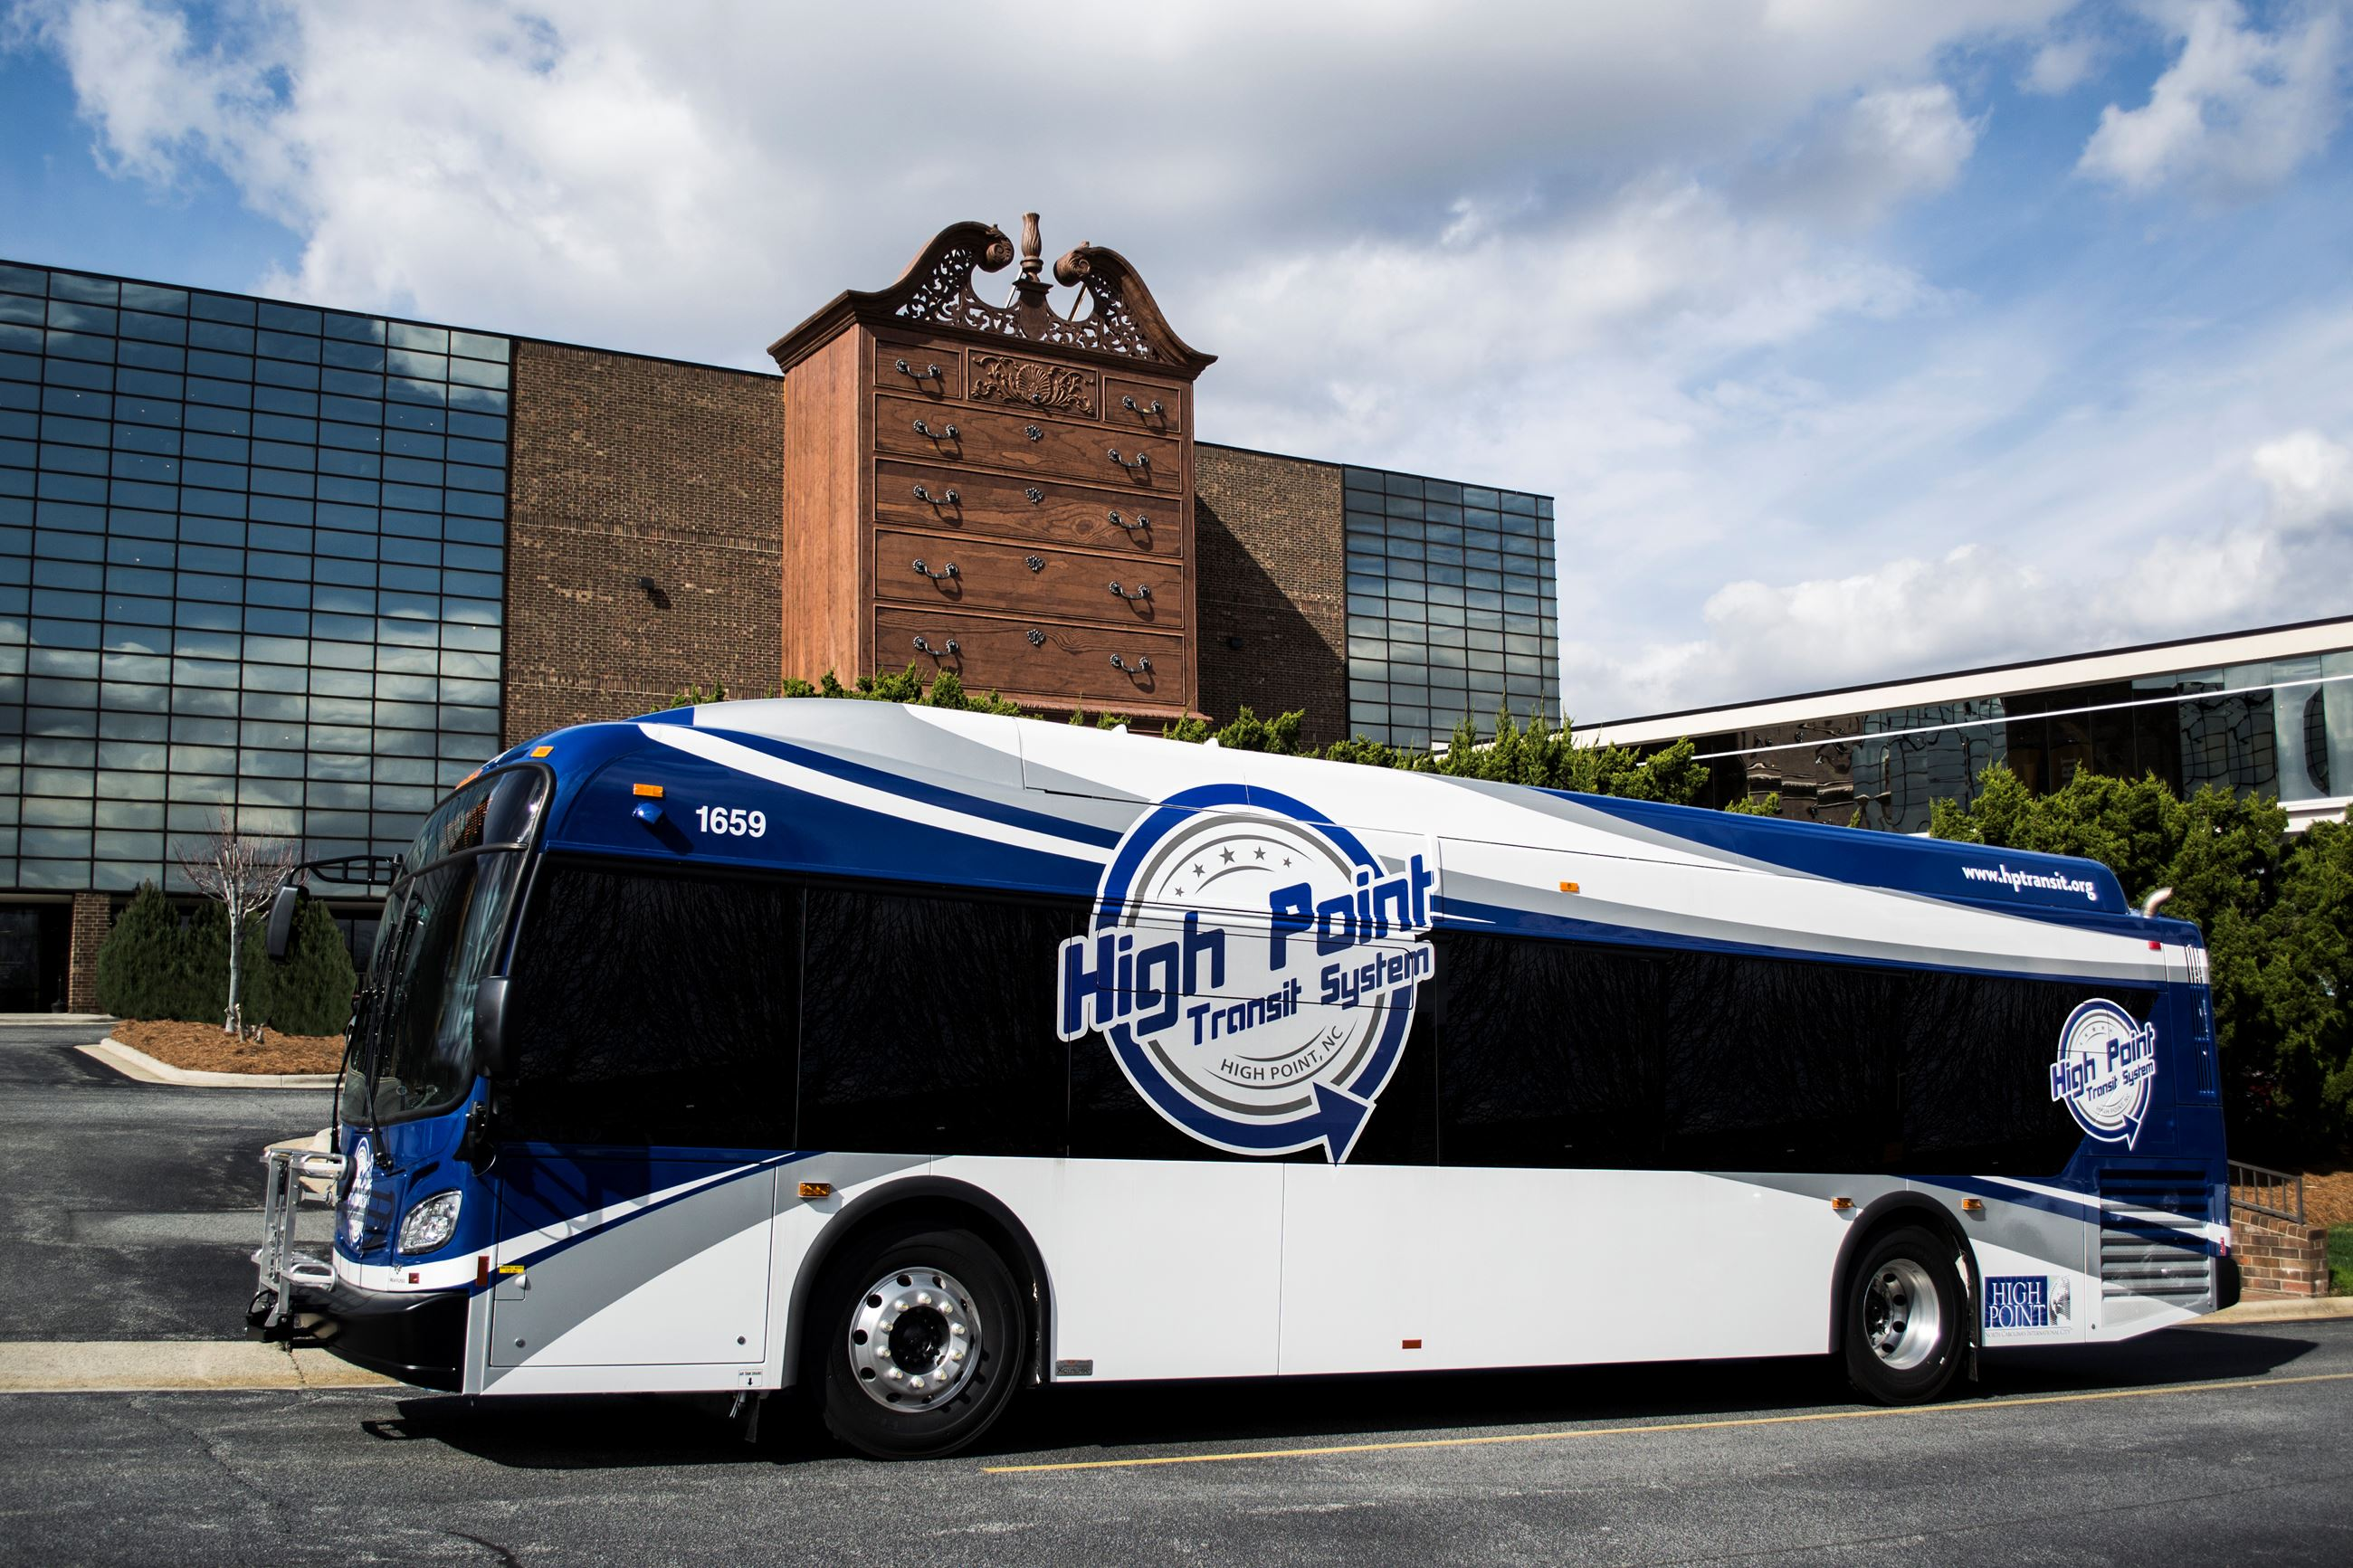 Nuevo folleto XD35 sobre el sistema de transporte de High Point